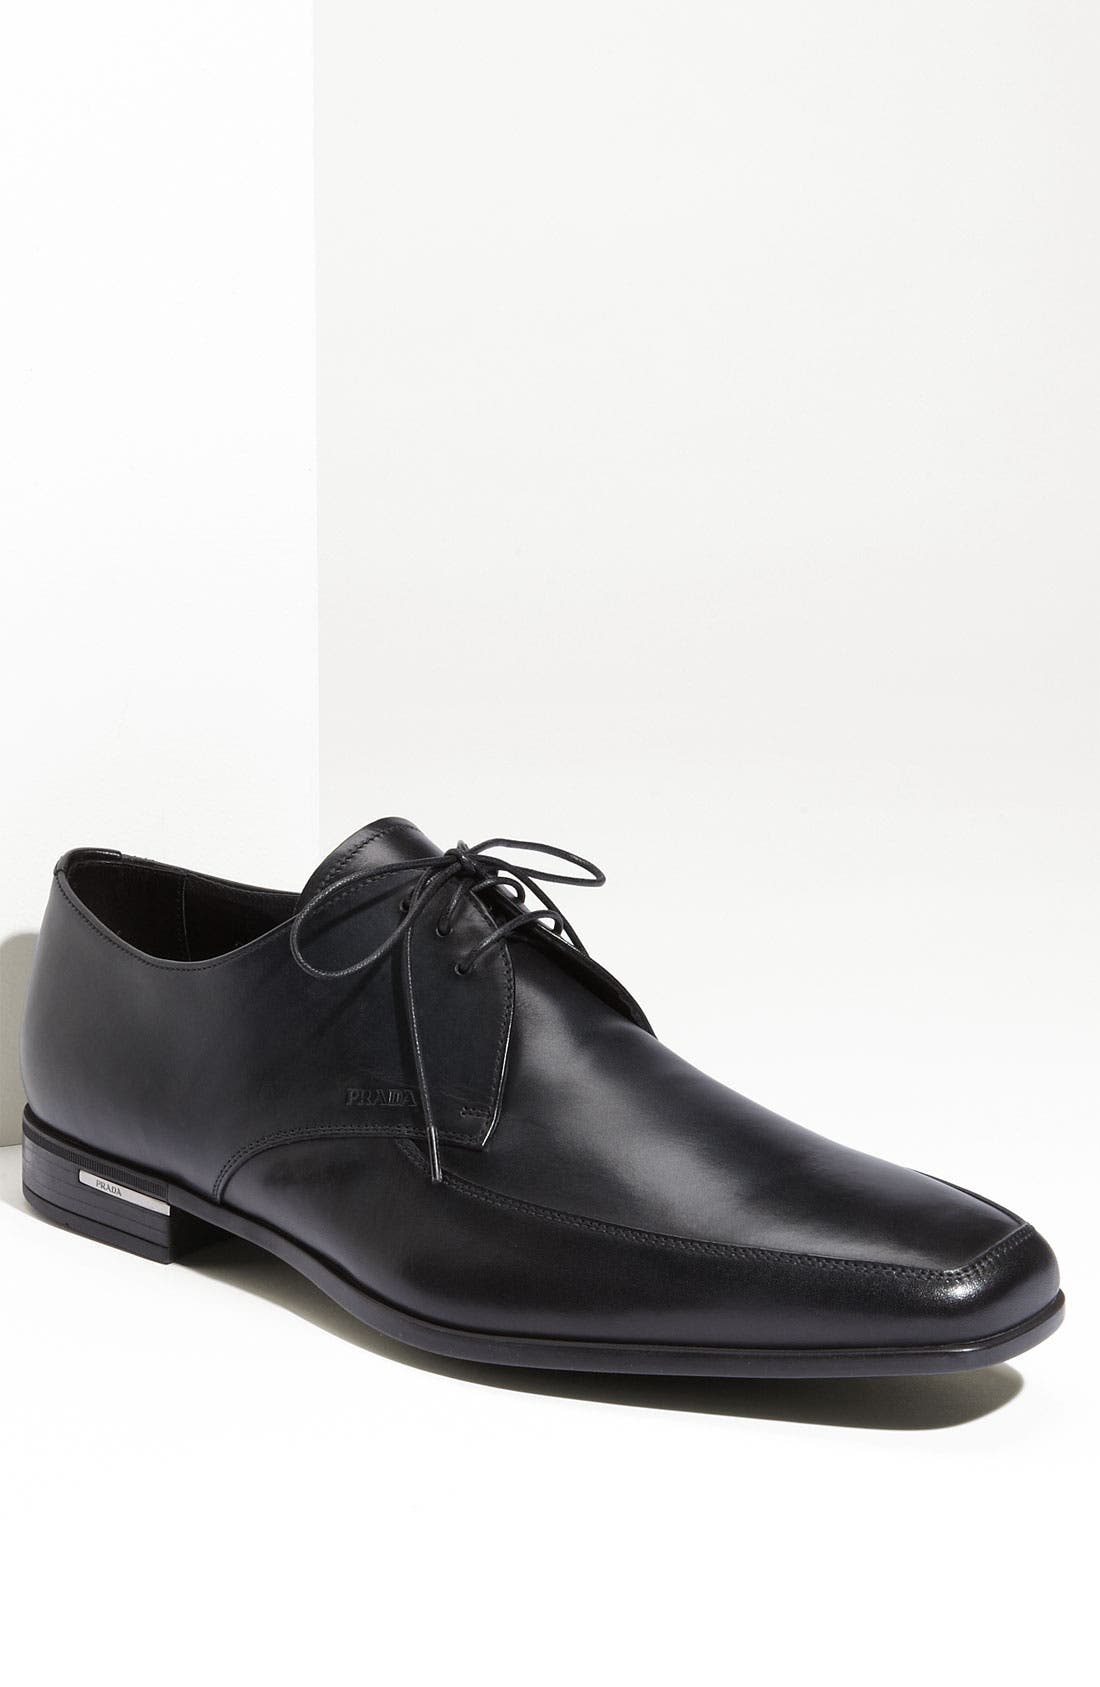 Alternate Image 1 Selected - Prada Apron Toe Oxford